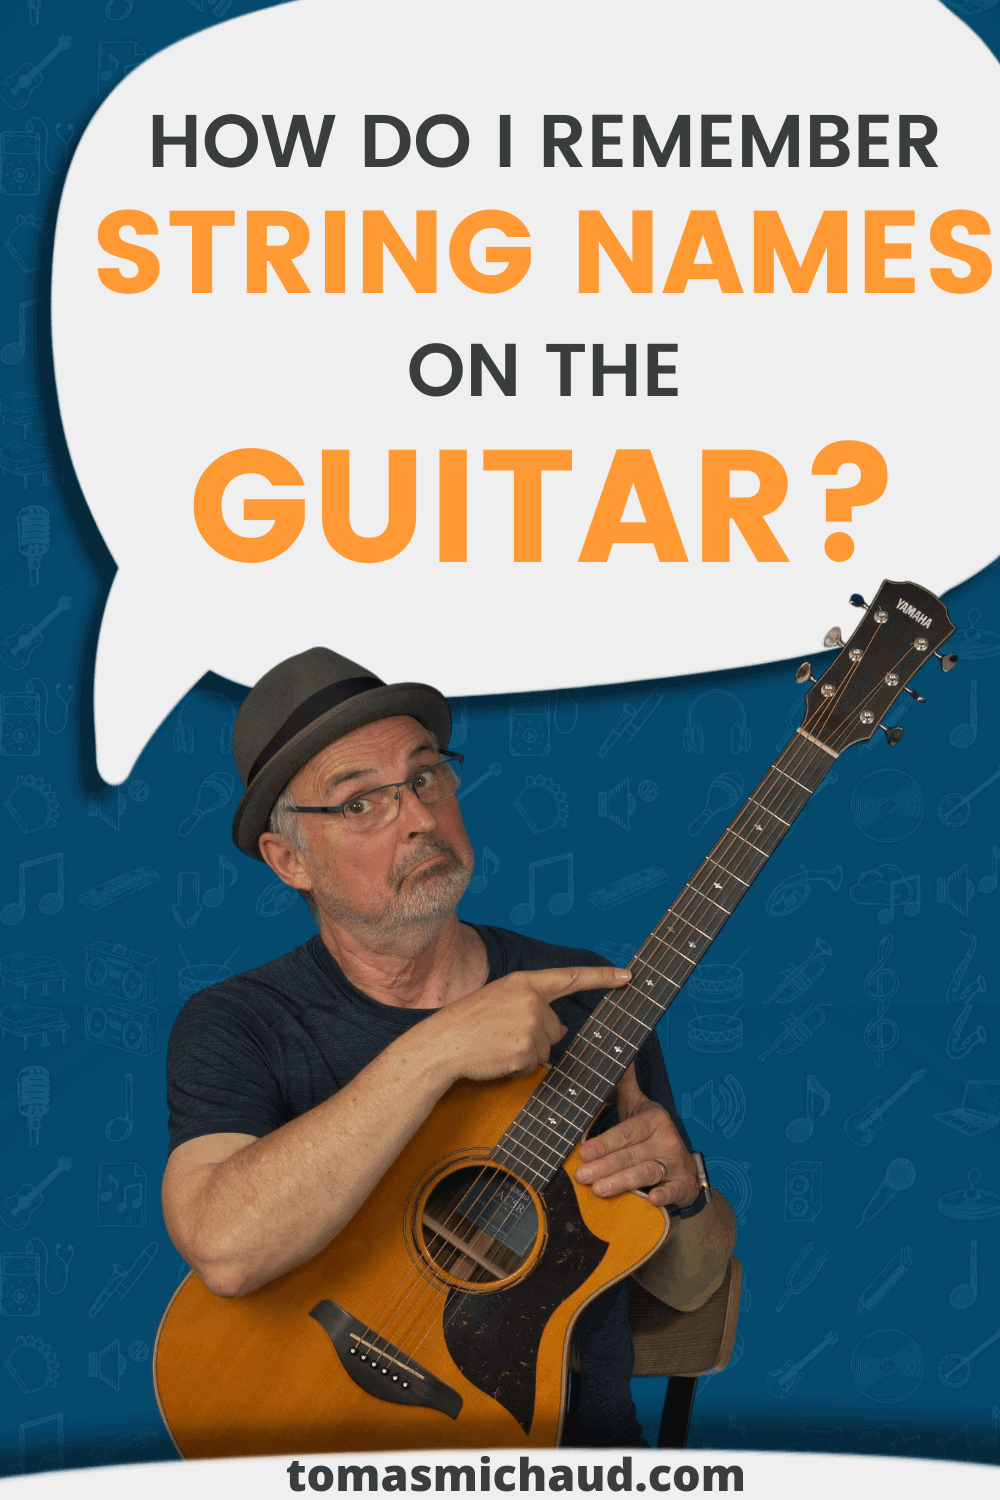 How Do I Remember String Names On The Guitar?